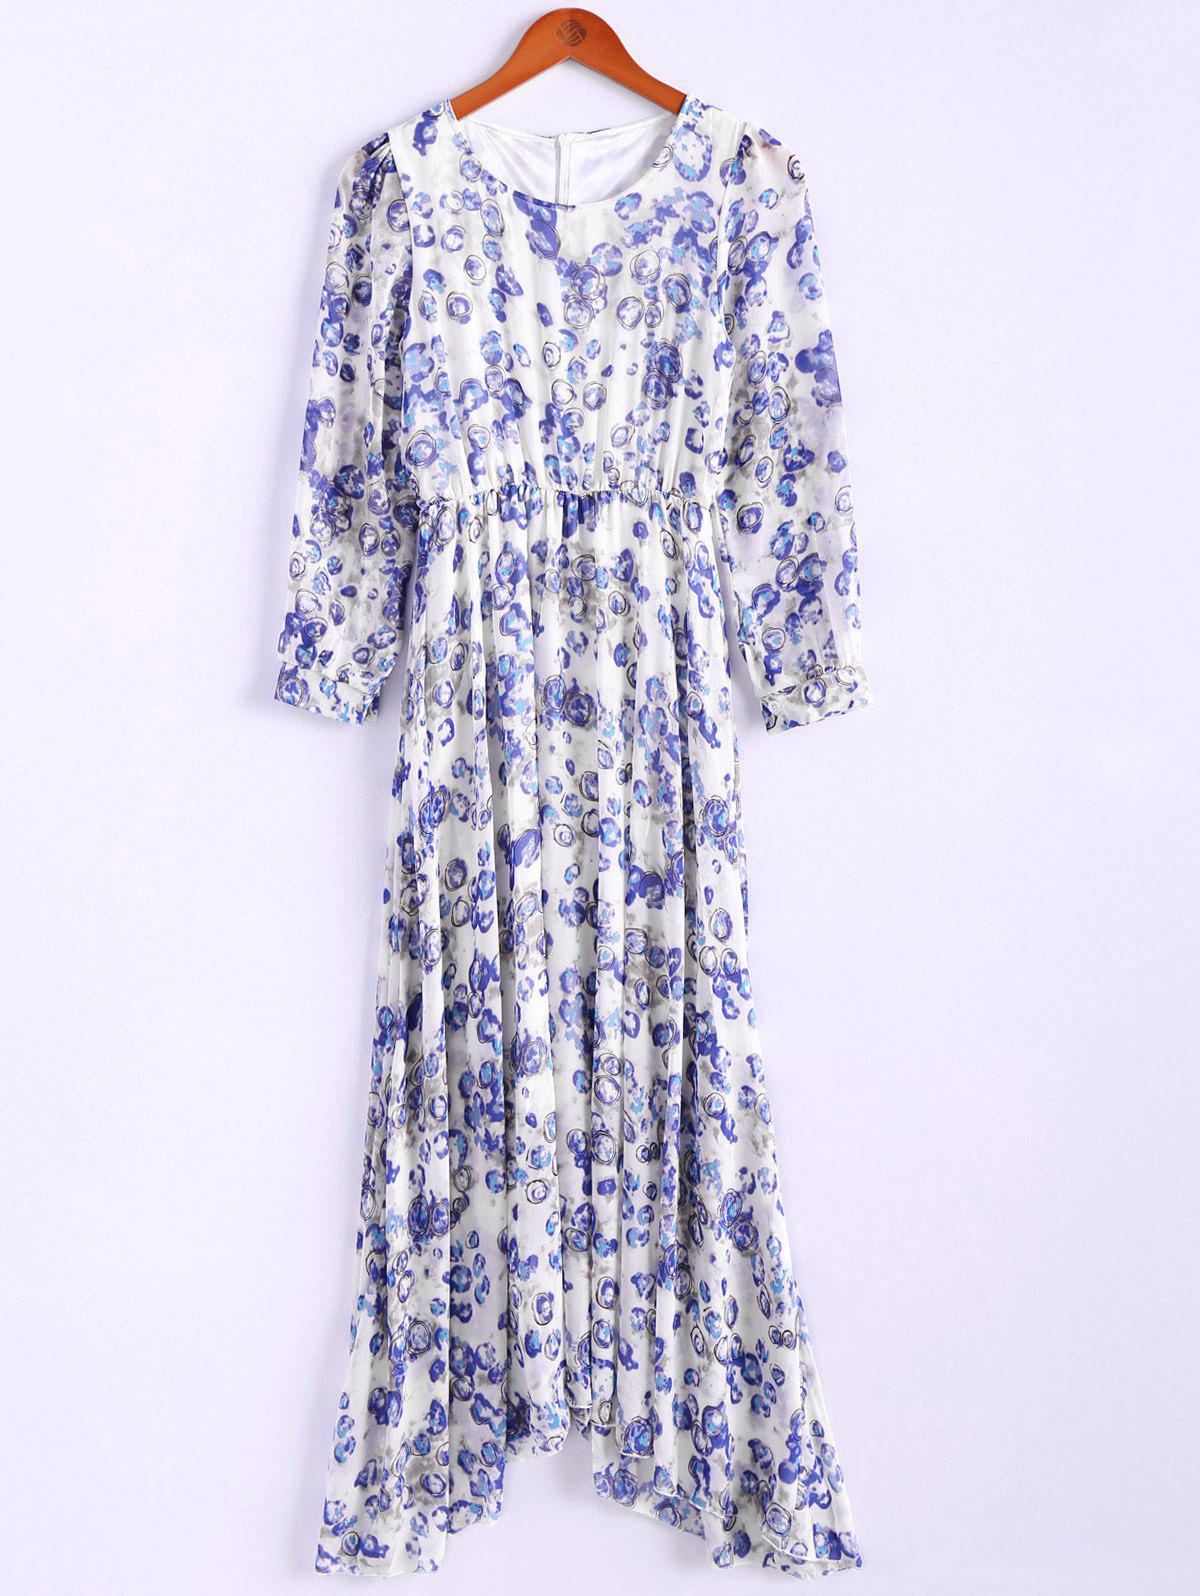 Bohemian Style Round Collar Long Sleeve Tiny Floral Print Chiffon Spring Dress For Women - BLUE M